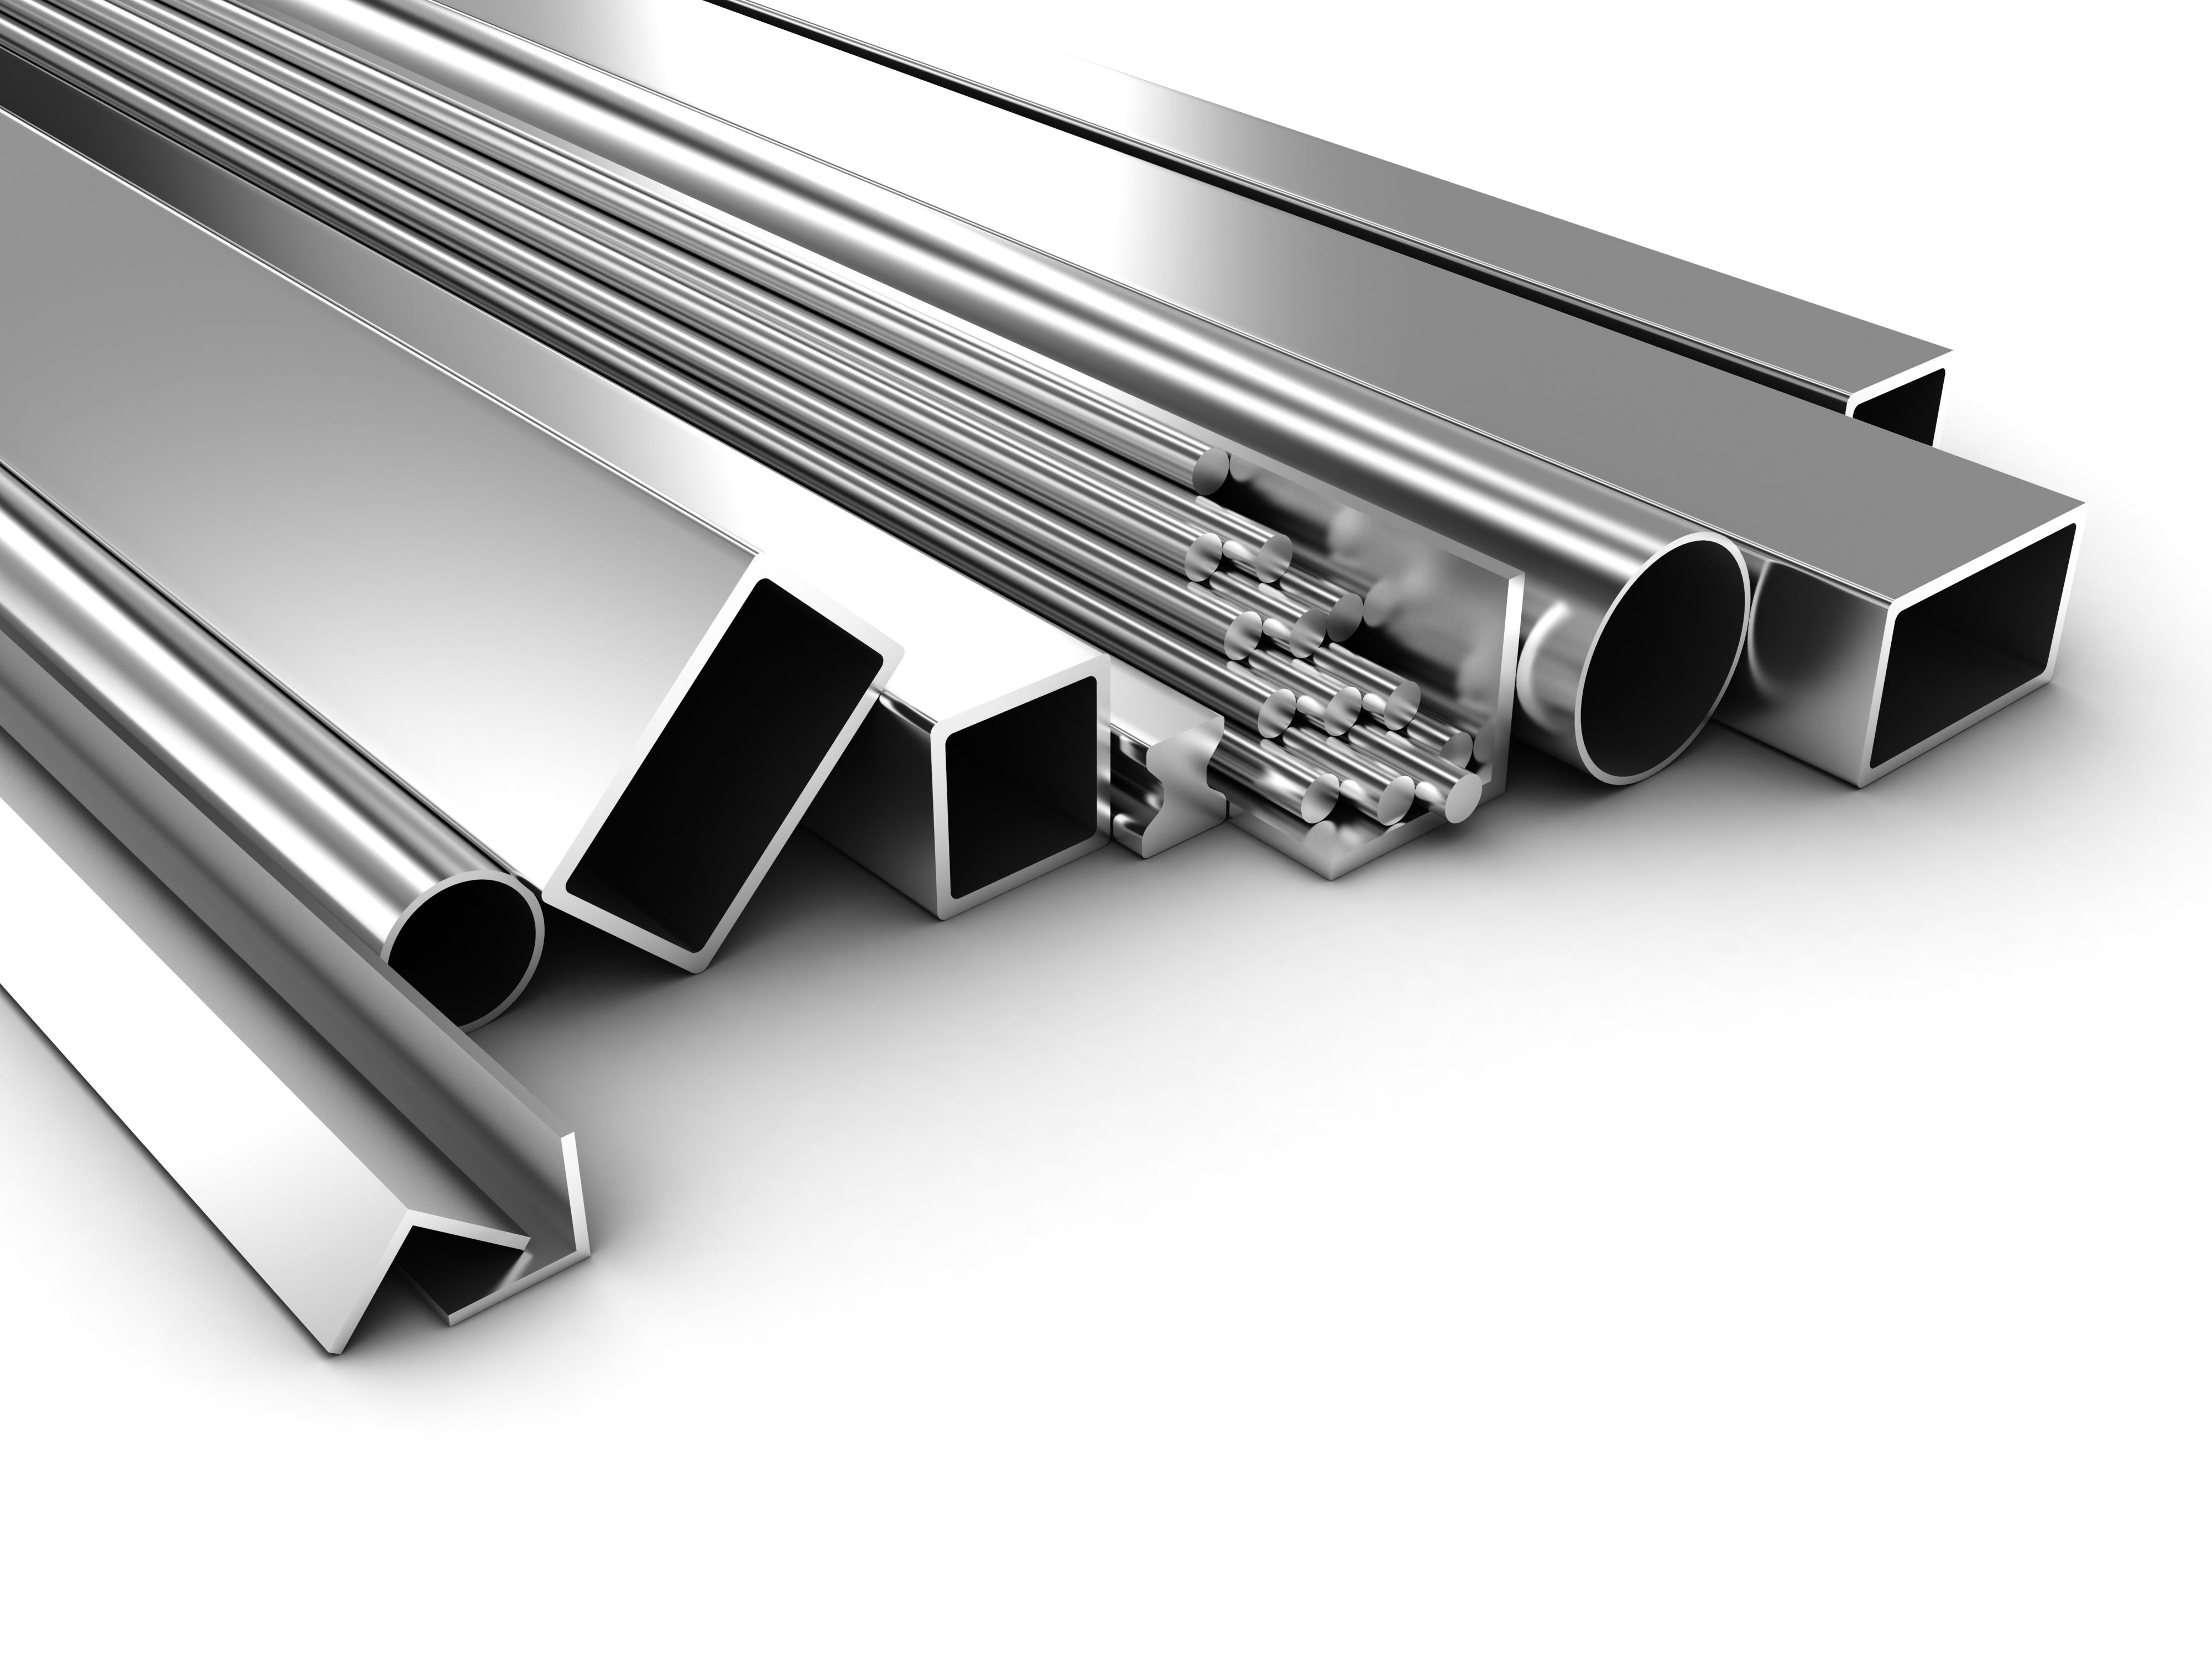 Pin On Metal Suppliers